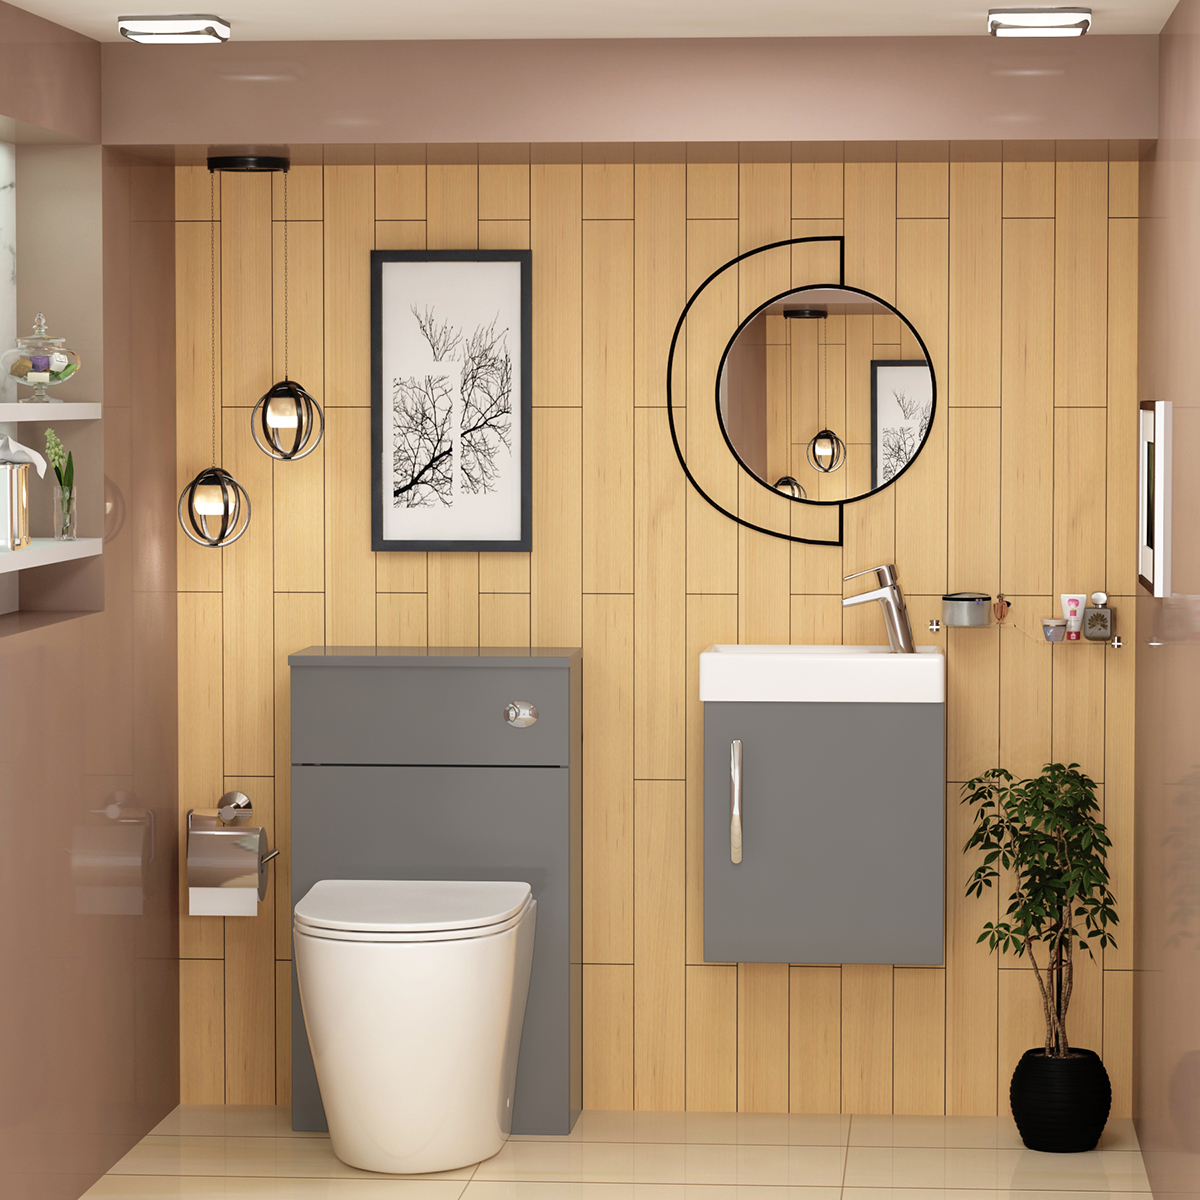 Bathroom Renovations and Remodeling Ideas for Future